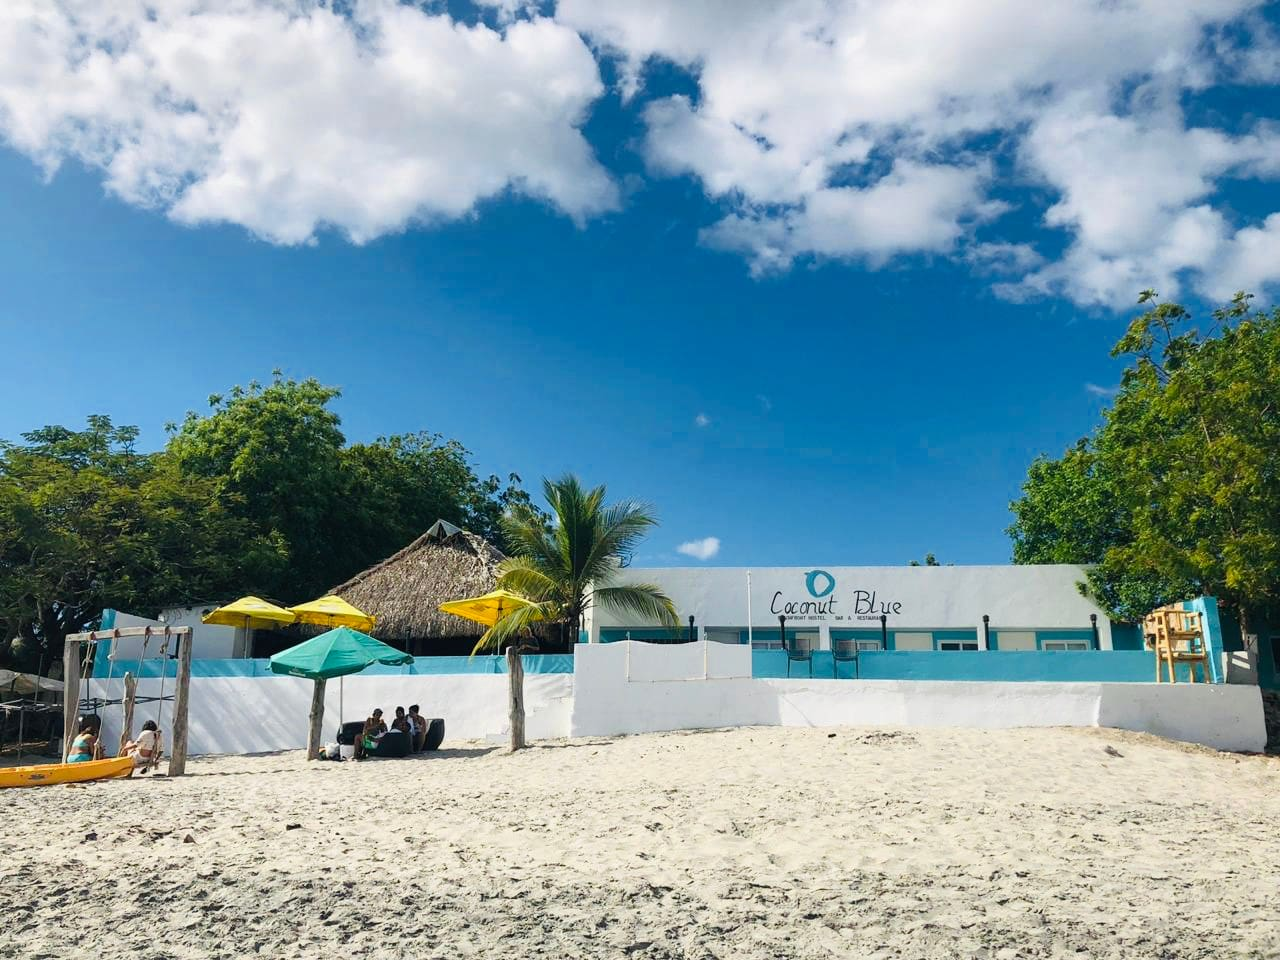 Welcome to Coconut Blue - Hostel, Beach bar and Restaurant. We offer private rooms with incredible ocean views.